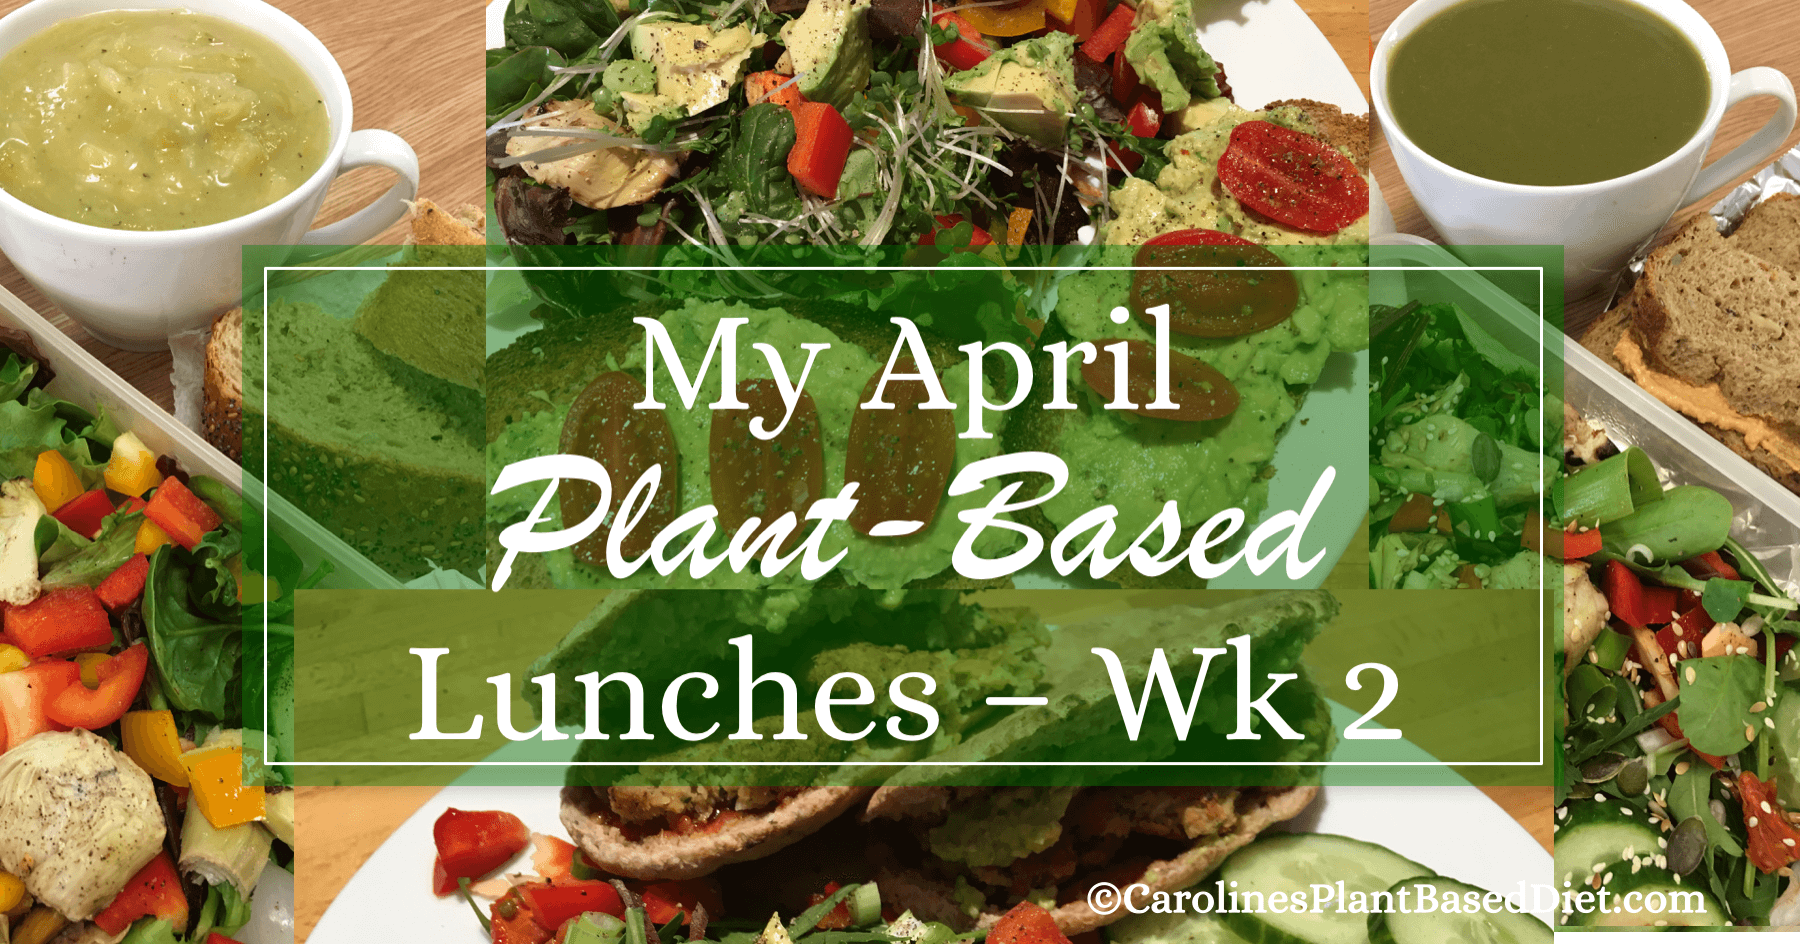 My April Plant-Based Lunches wk2